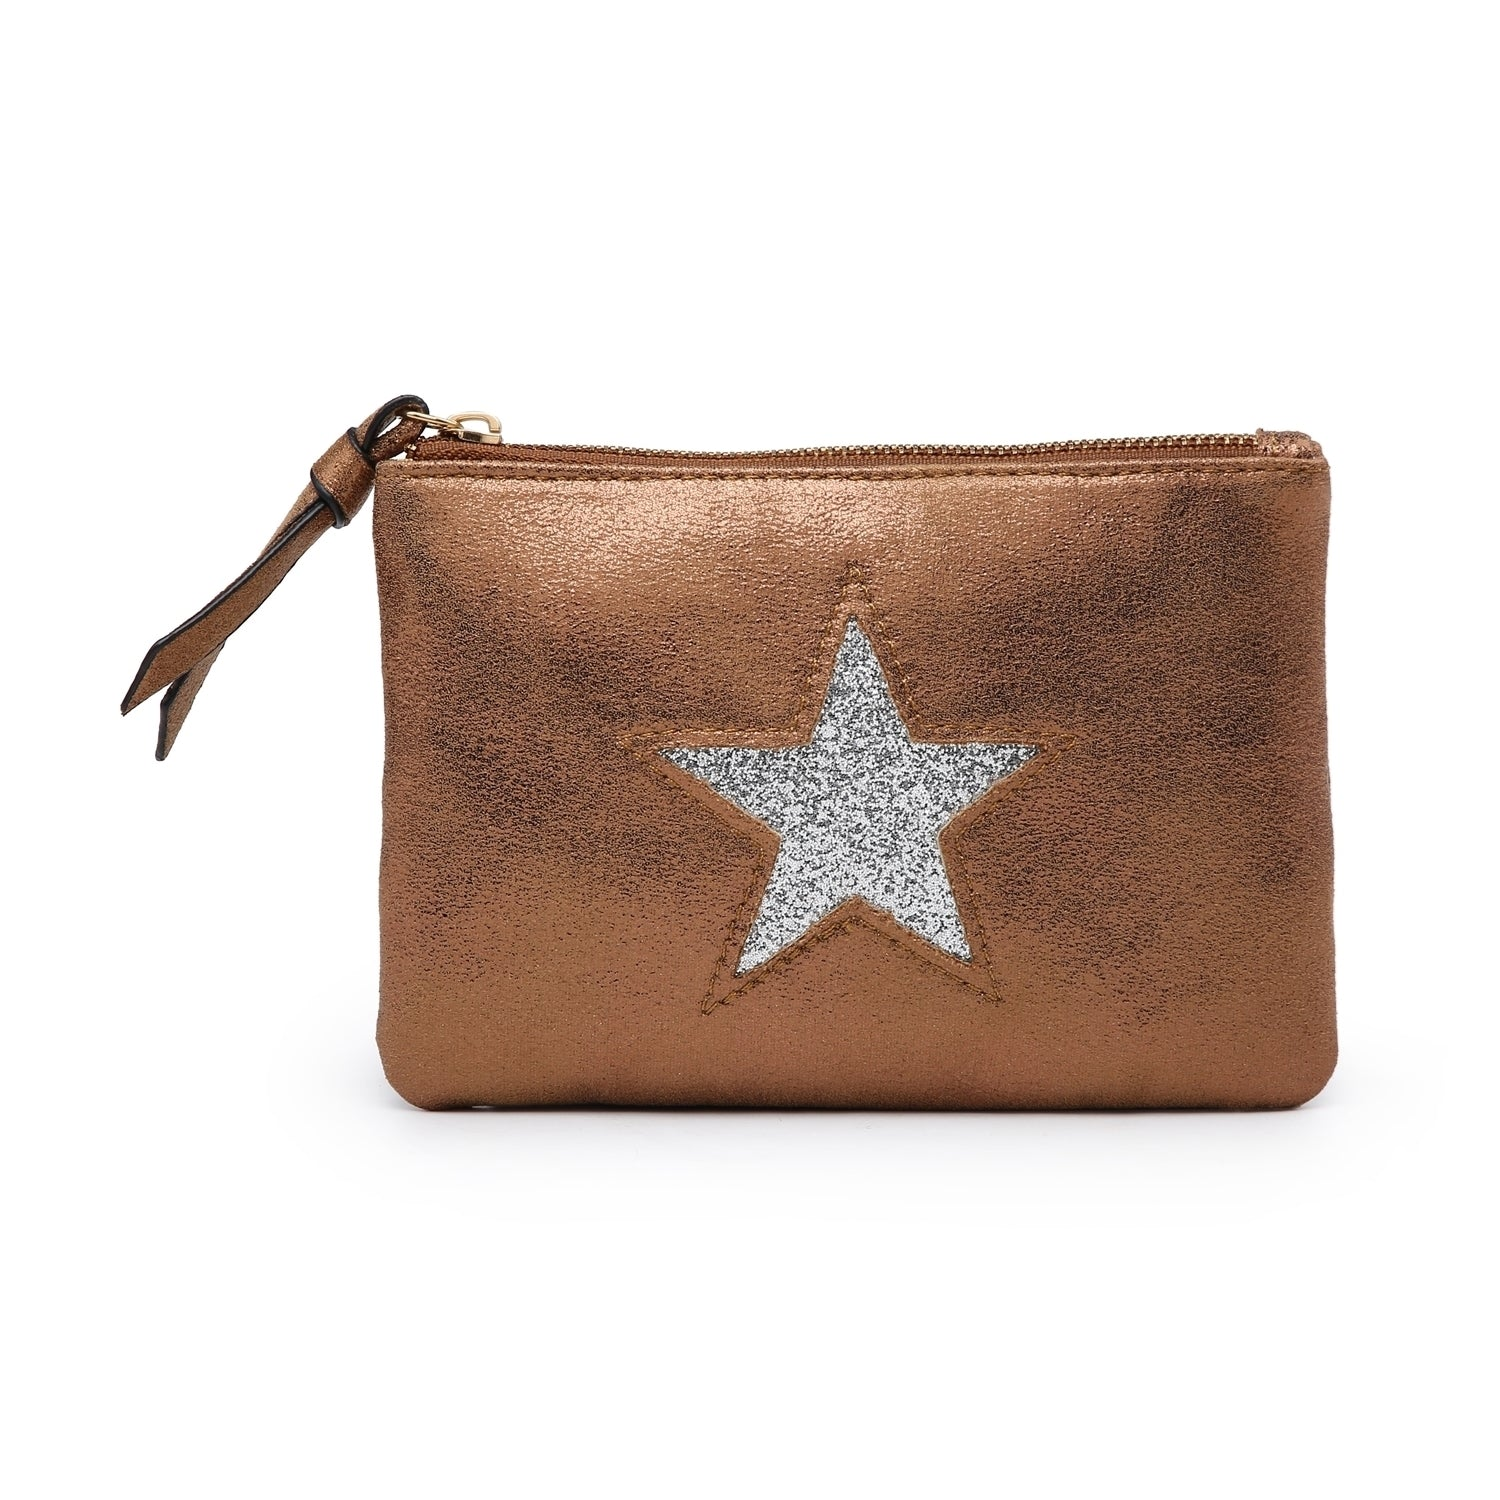 Medium Star Purse | Tan